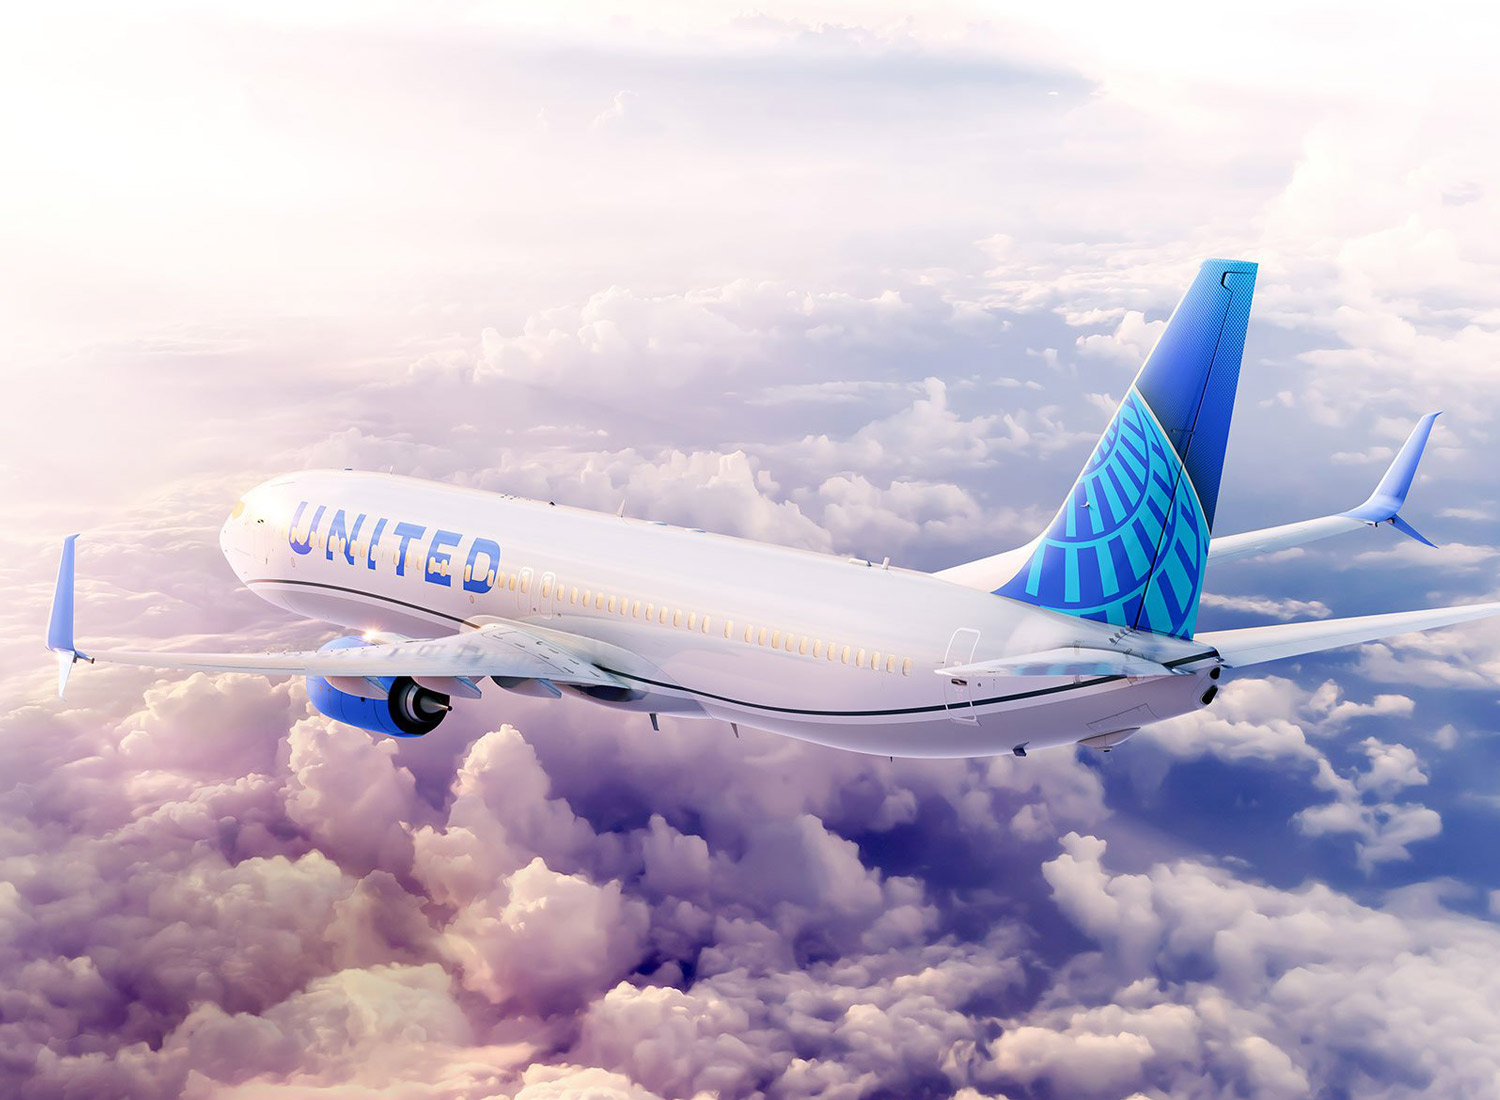 United Airlines New Livery, Quelle: United